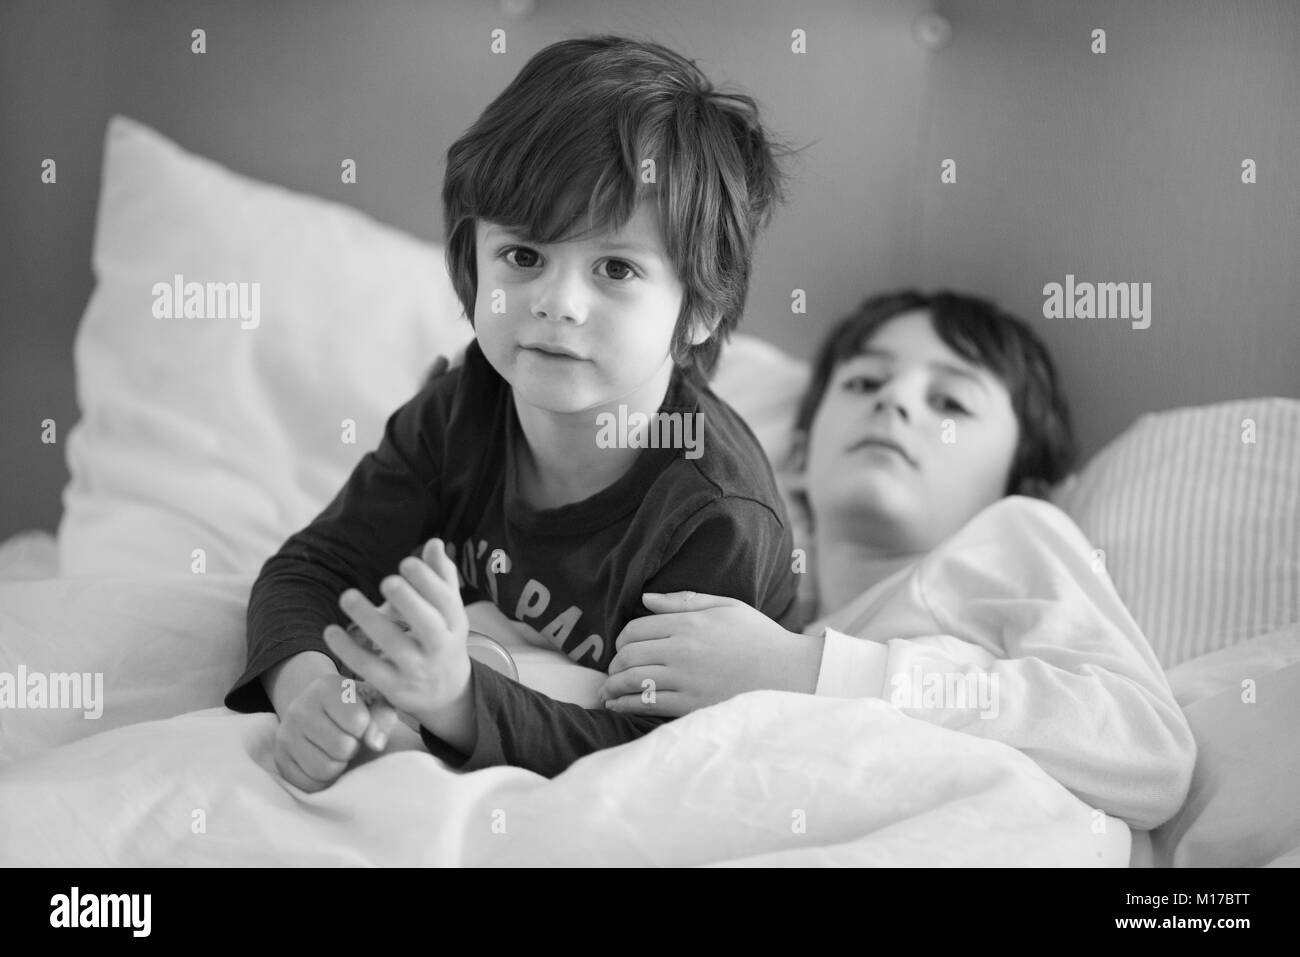 Brothers - Stock Image